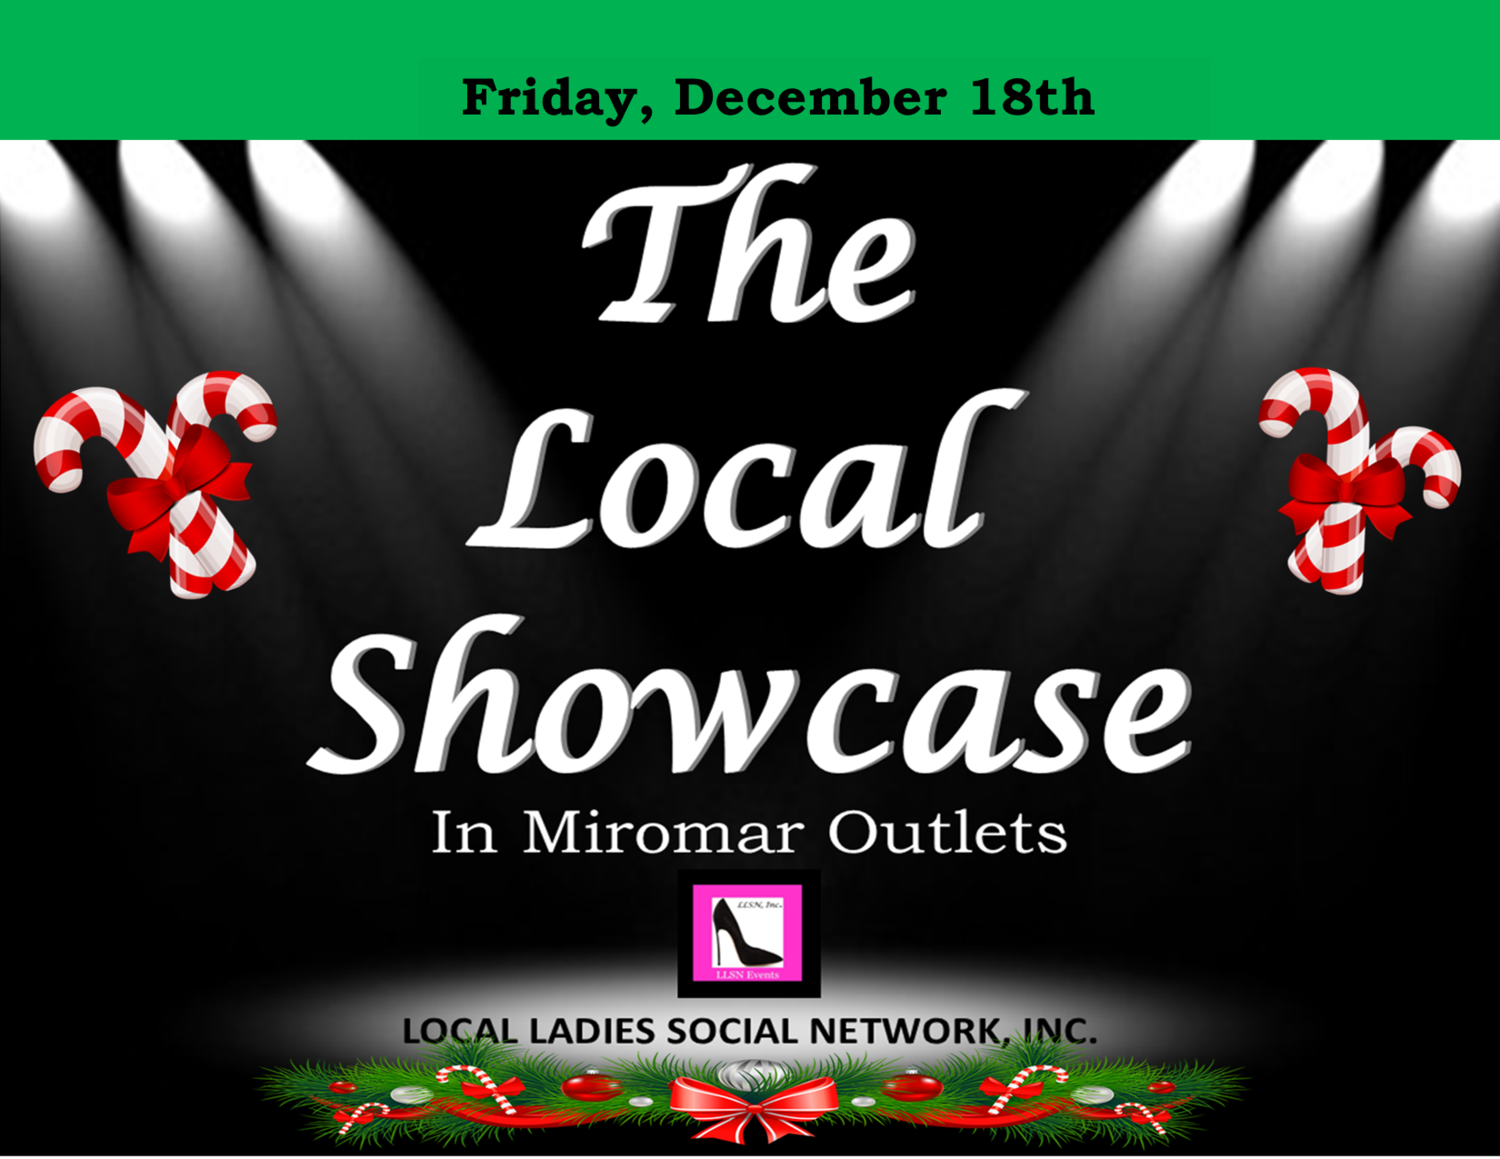 Friday, December 18th 11am-7pm